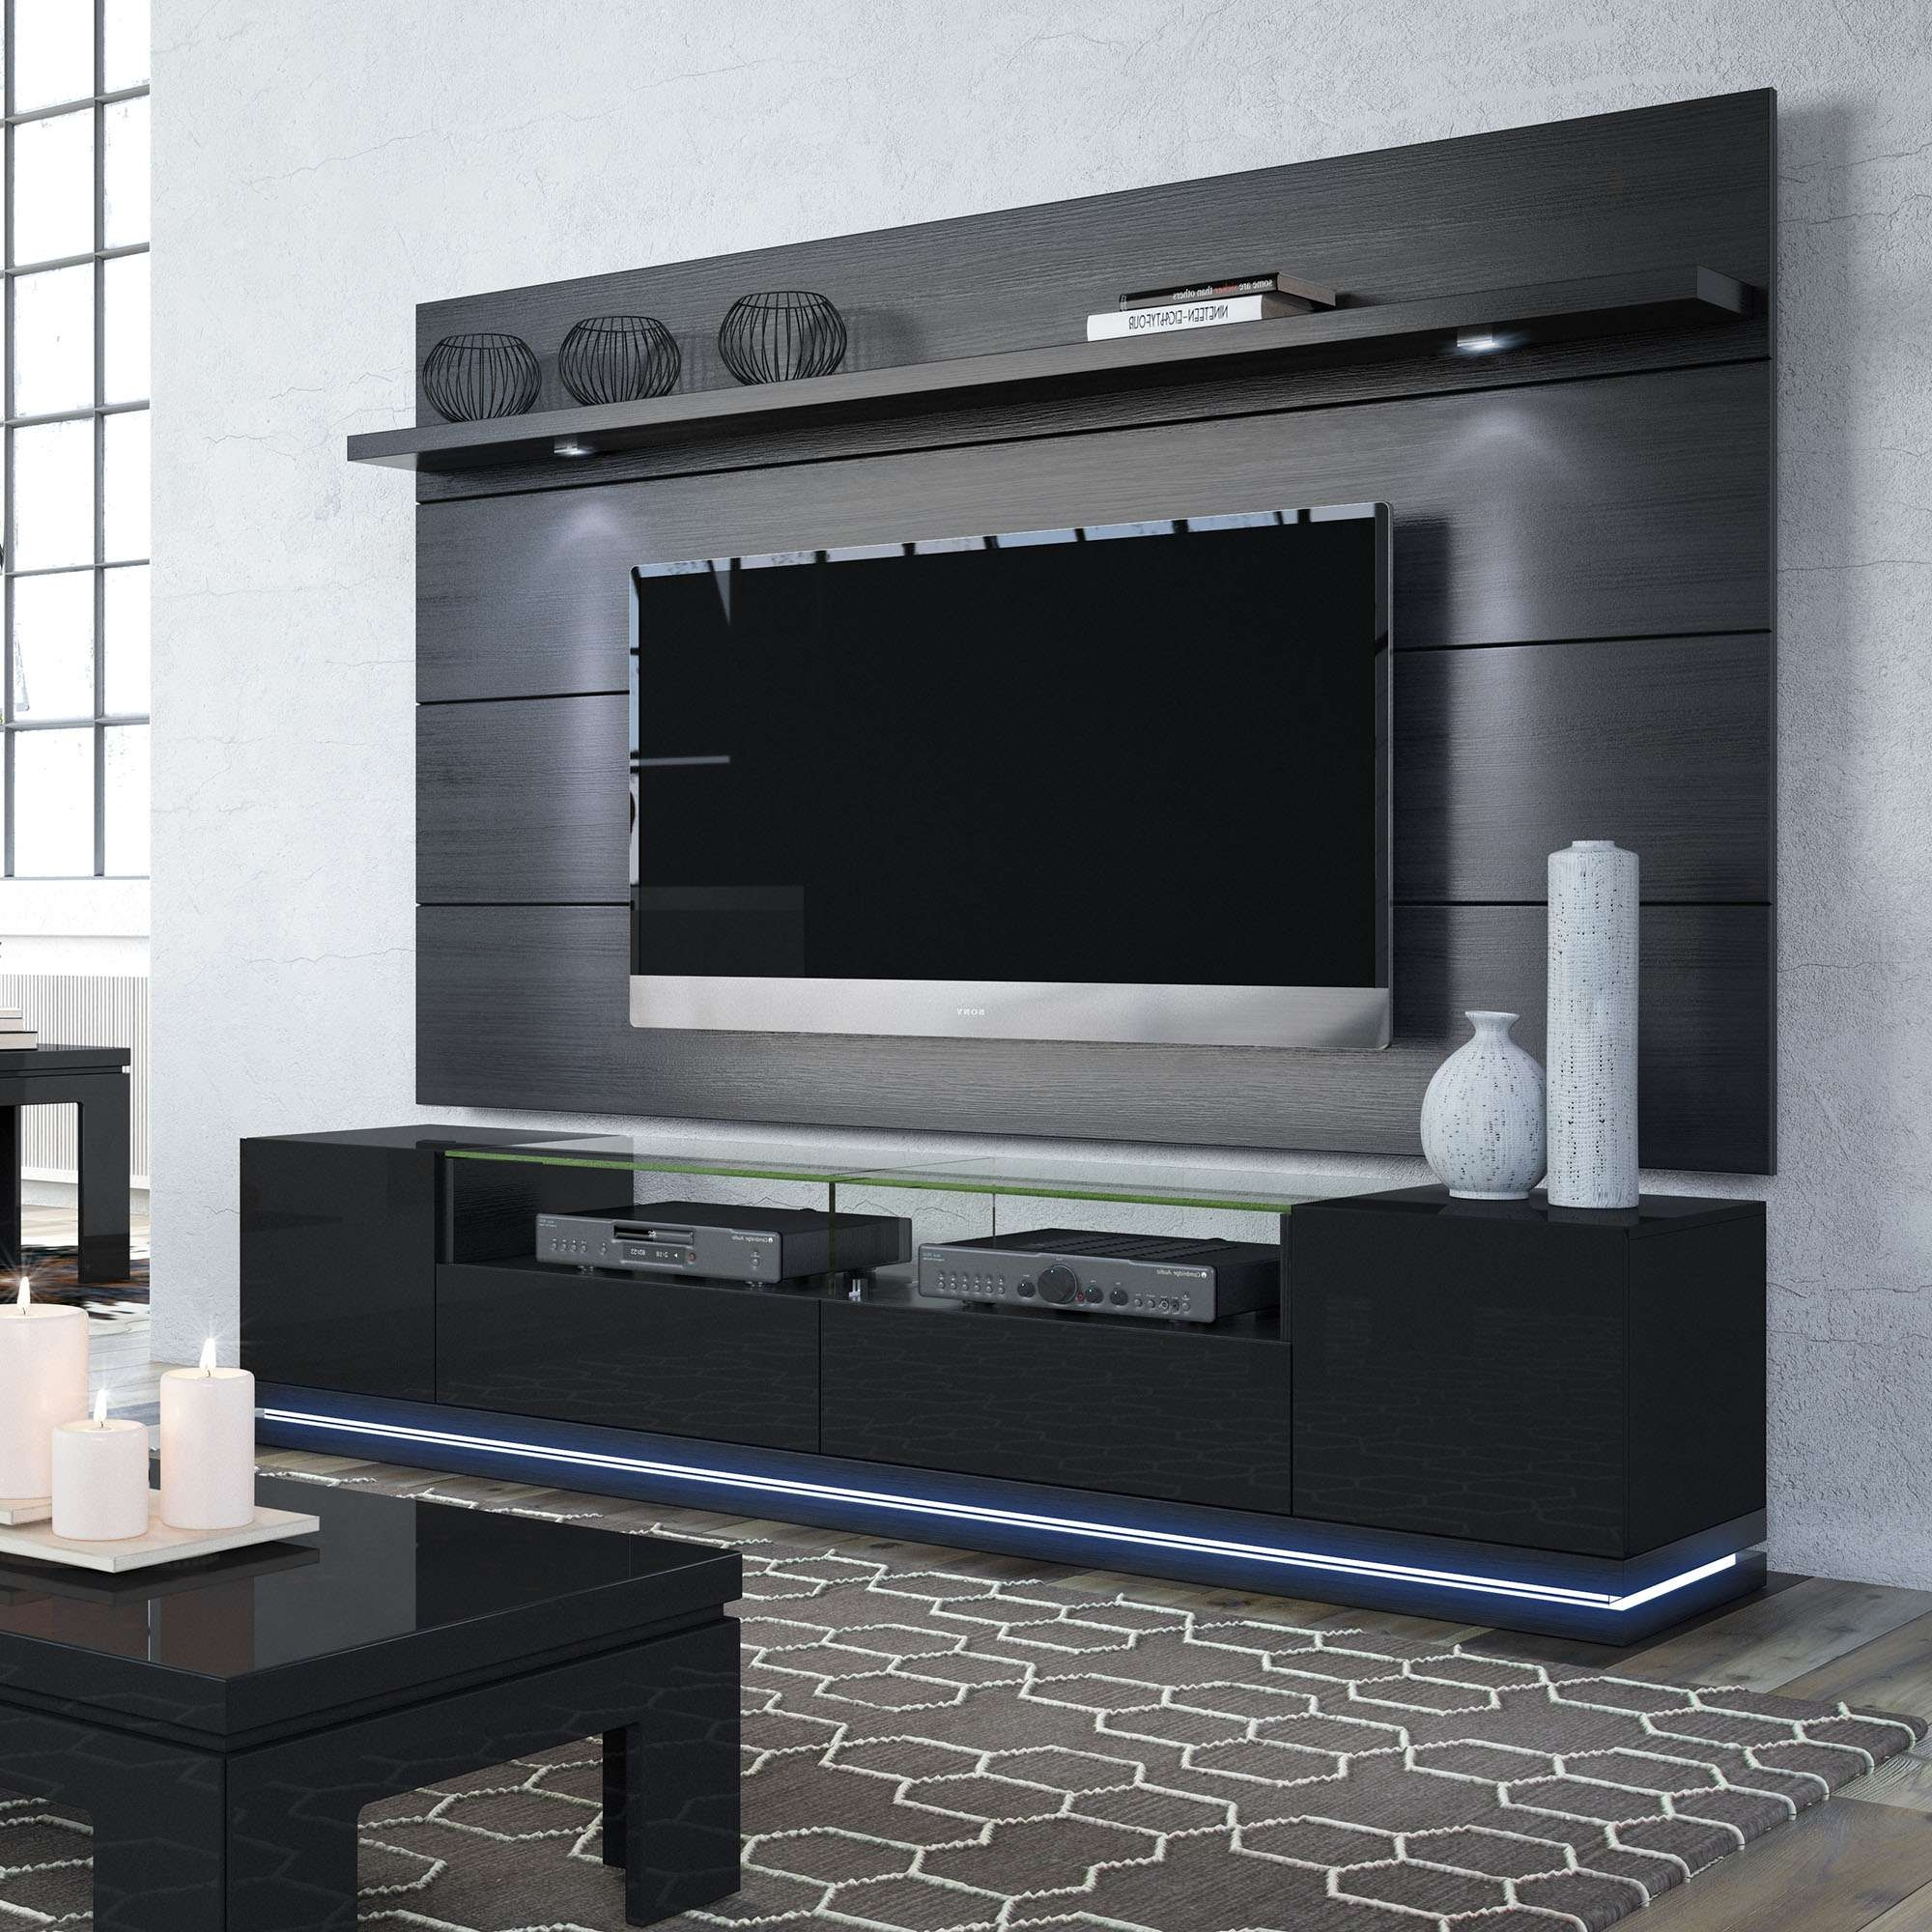 Vanderbilt Black Gloss & Black Matte Tv Stand & Cabrini 2.2 Within Black Gloss Tv Stands (Gallery 13 of 20)